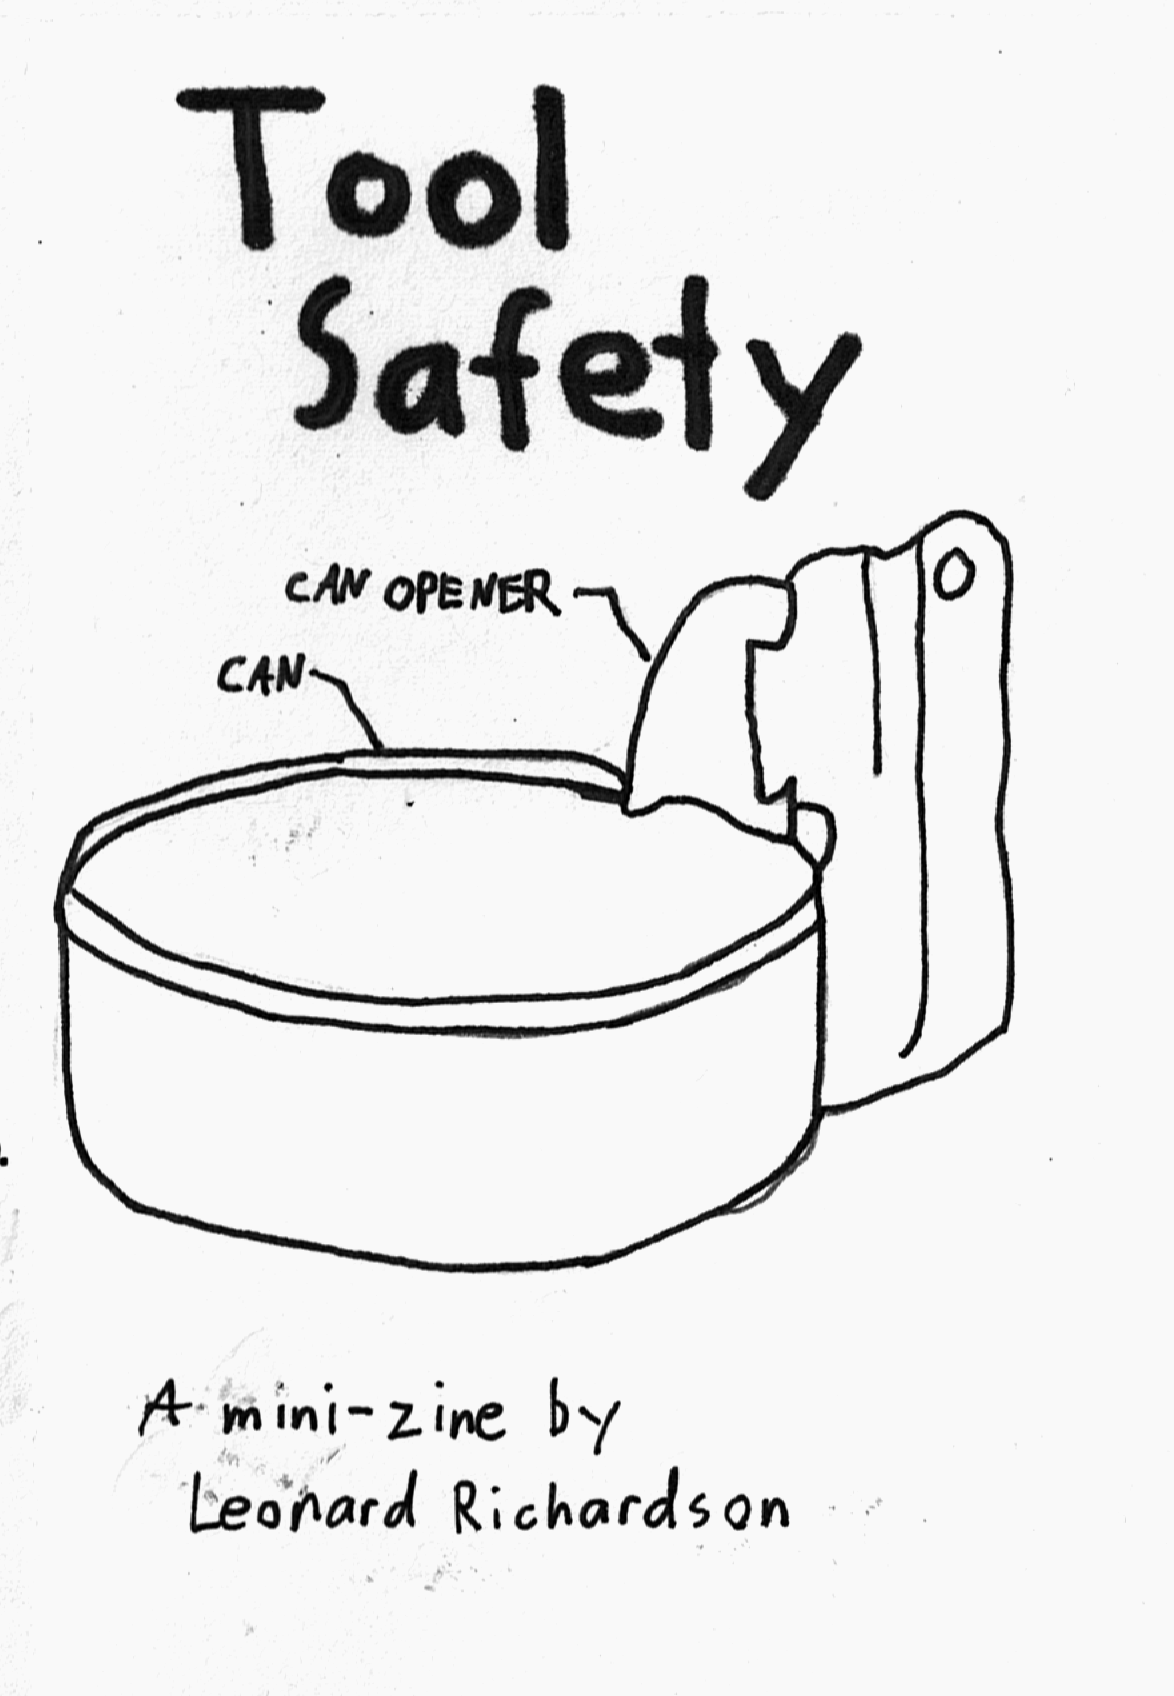 Tool Safety: A Beautiful Soup zine